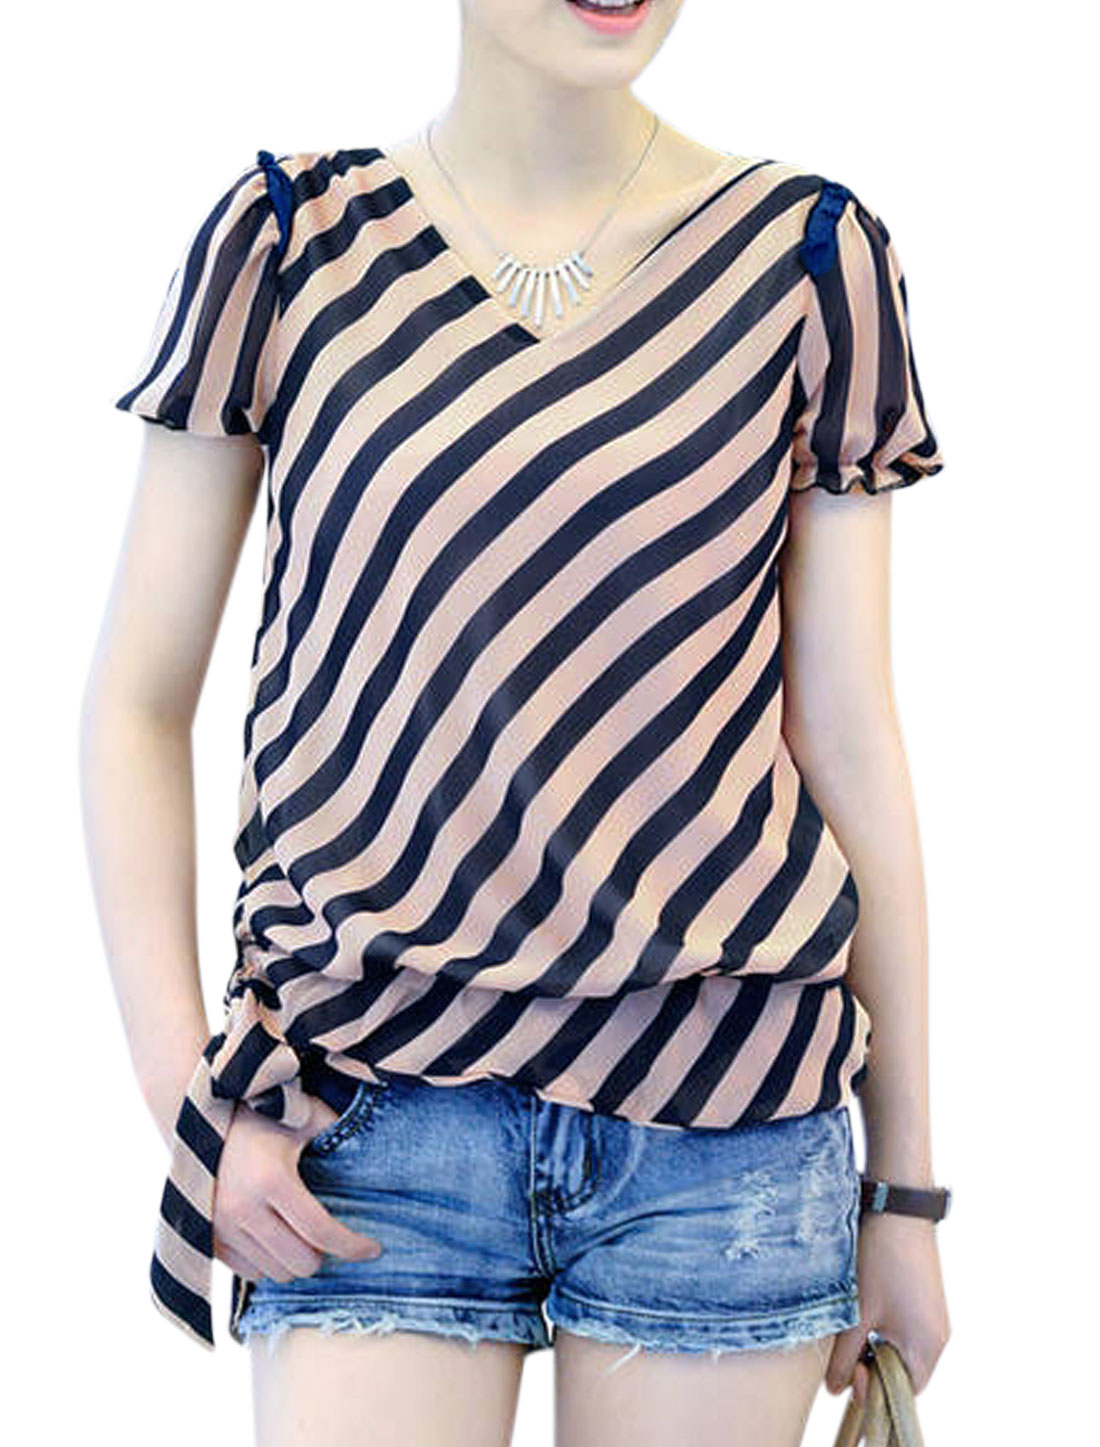 Women Cozy Fit V Neck Oblique Stripes Full Lined Chffion Top Navy Blue Coral Pink M